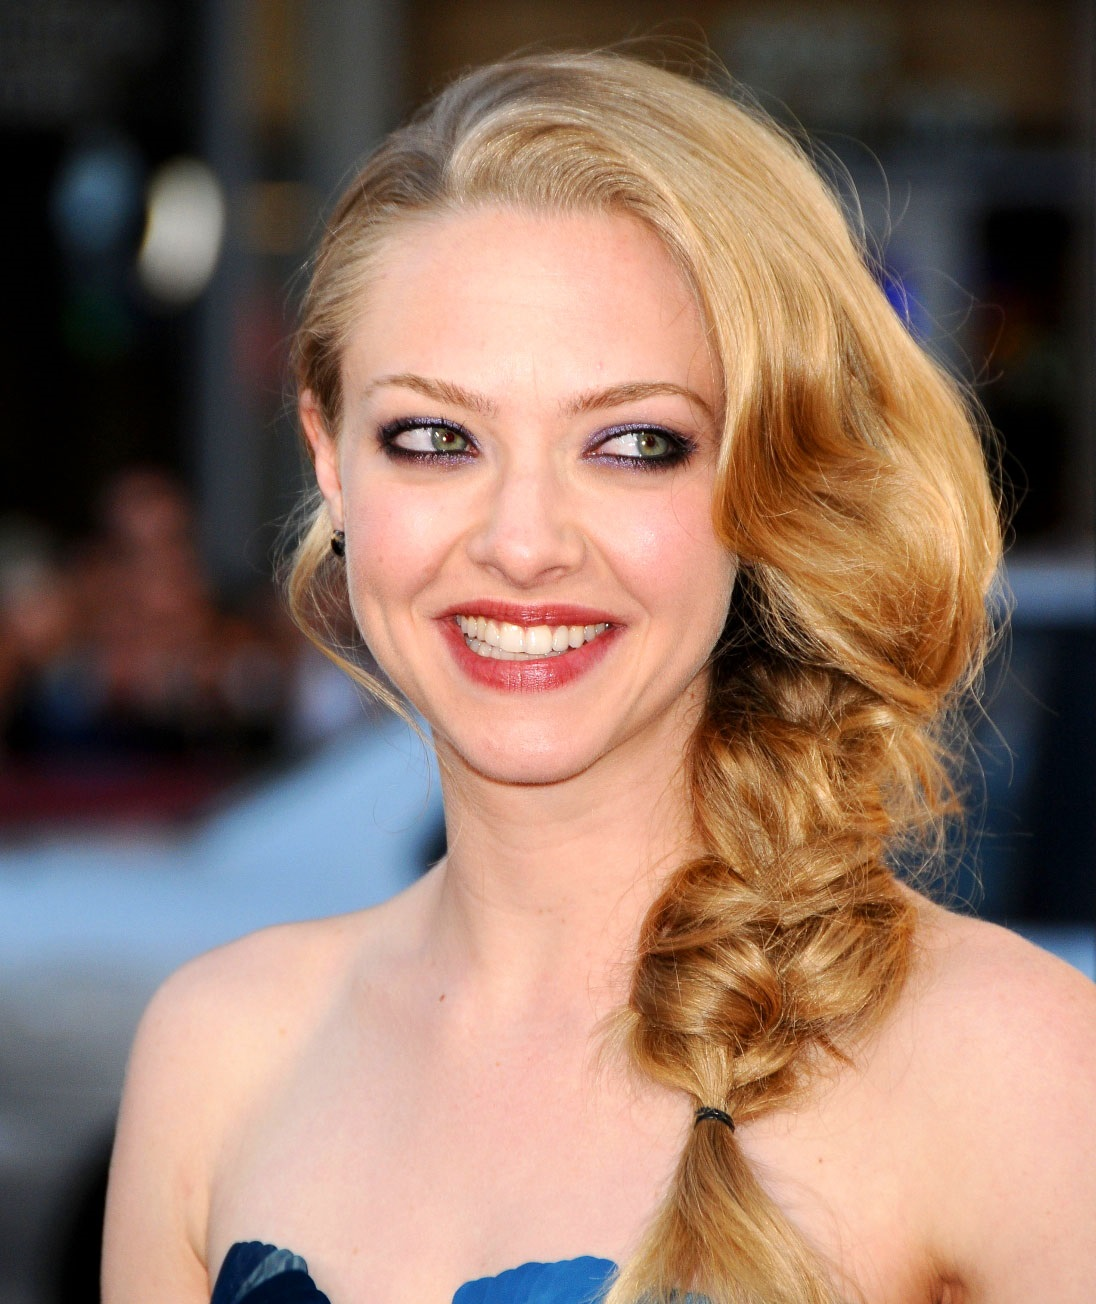 Celebrities Hairstyles: Amanda Seyfried Hairstyles 2017